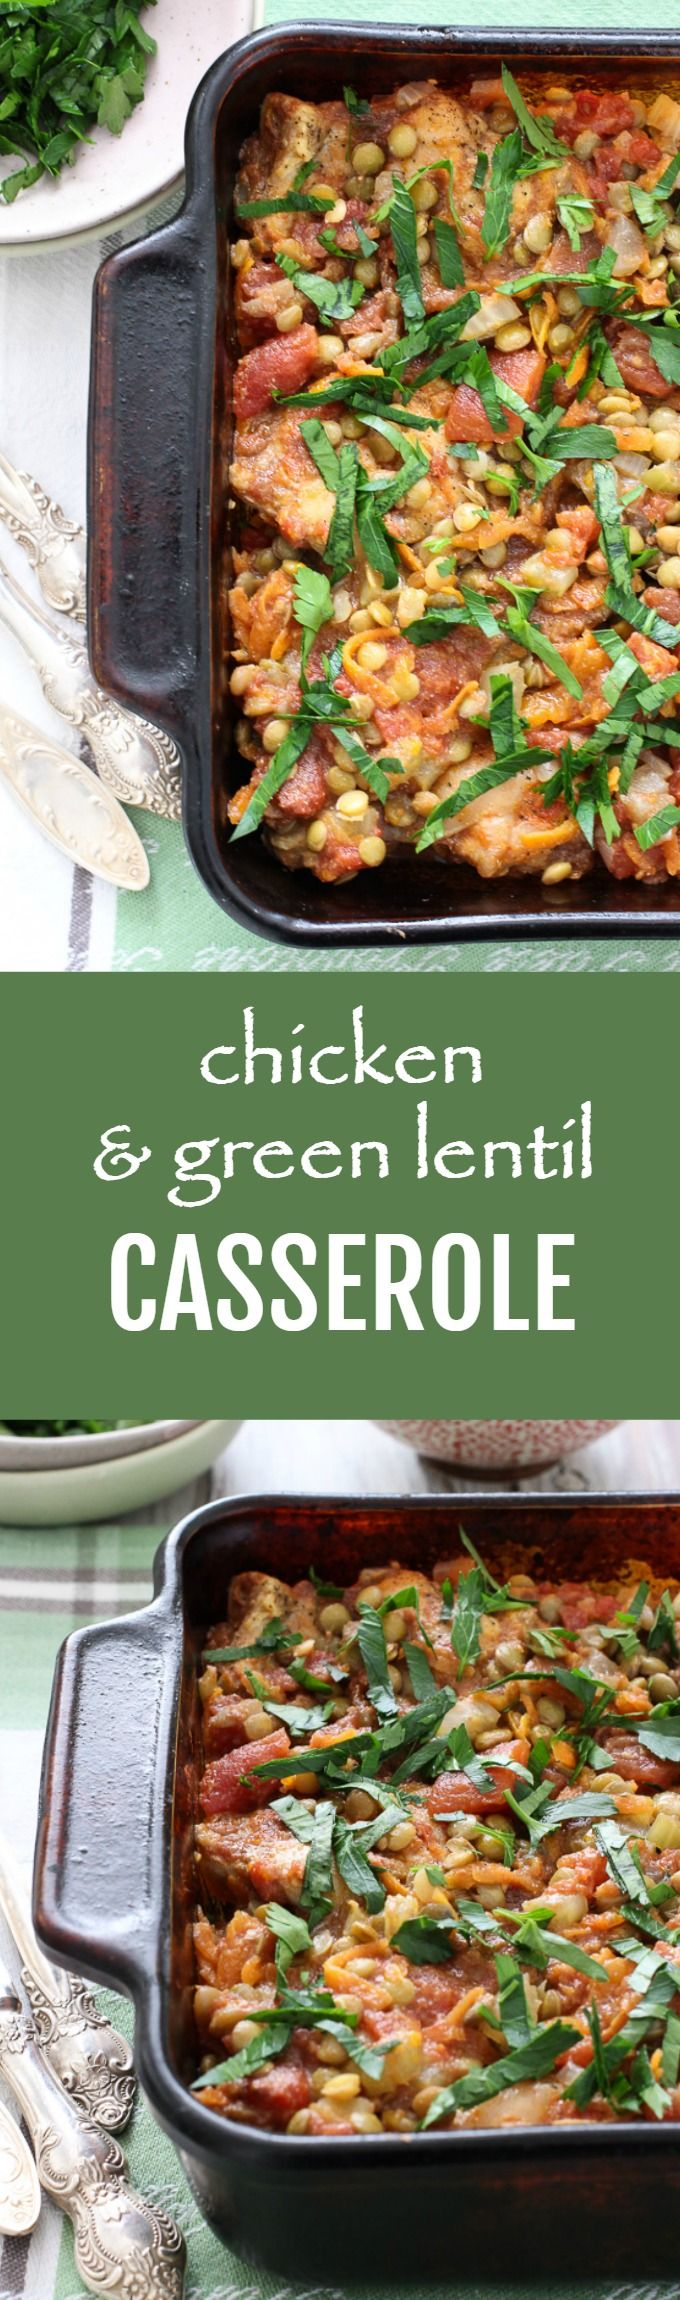 Chicken and Green Lentil Casserole - a comforting, flavorful, and protein rich dish. Just place all the ingredients into a baking dish and let the oven do its magic.